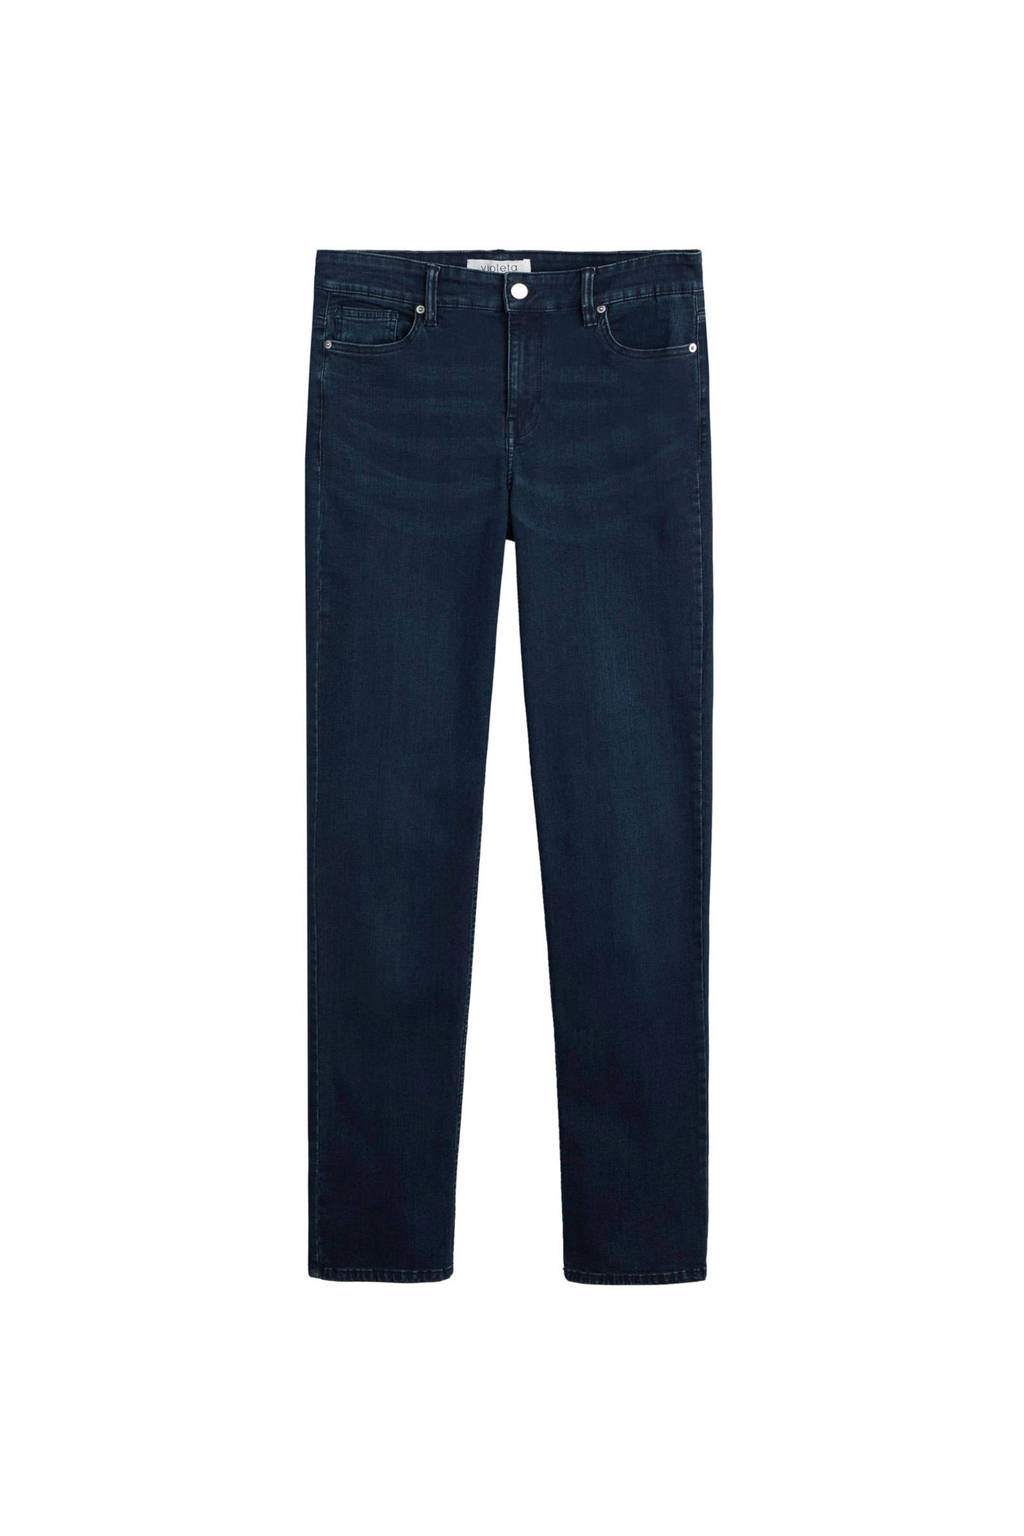 Violeta by Mango straight fit jeans donkerblauw, Donkerblauw